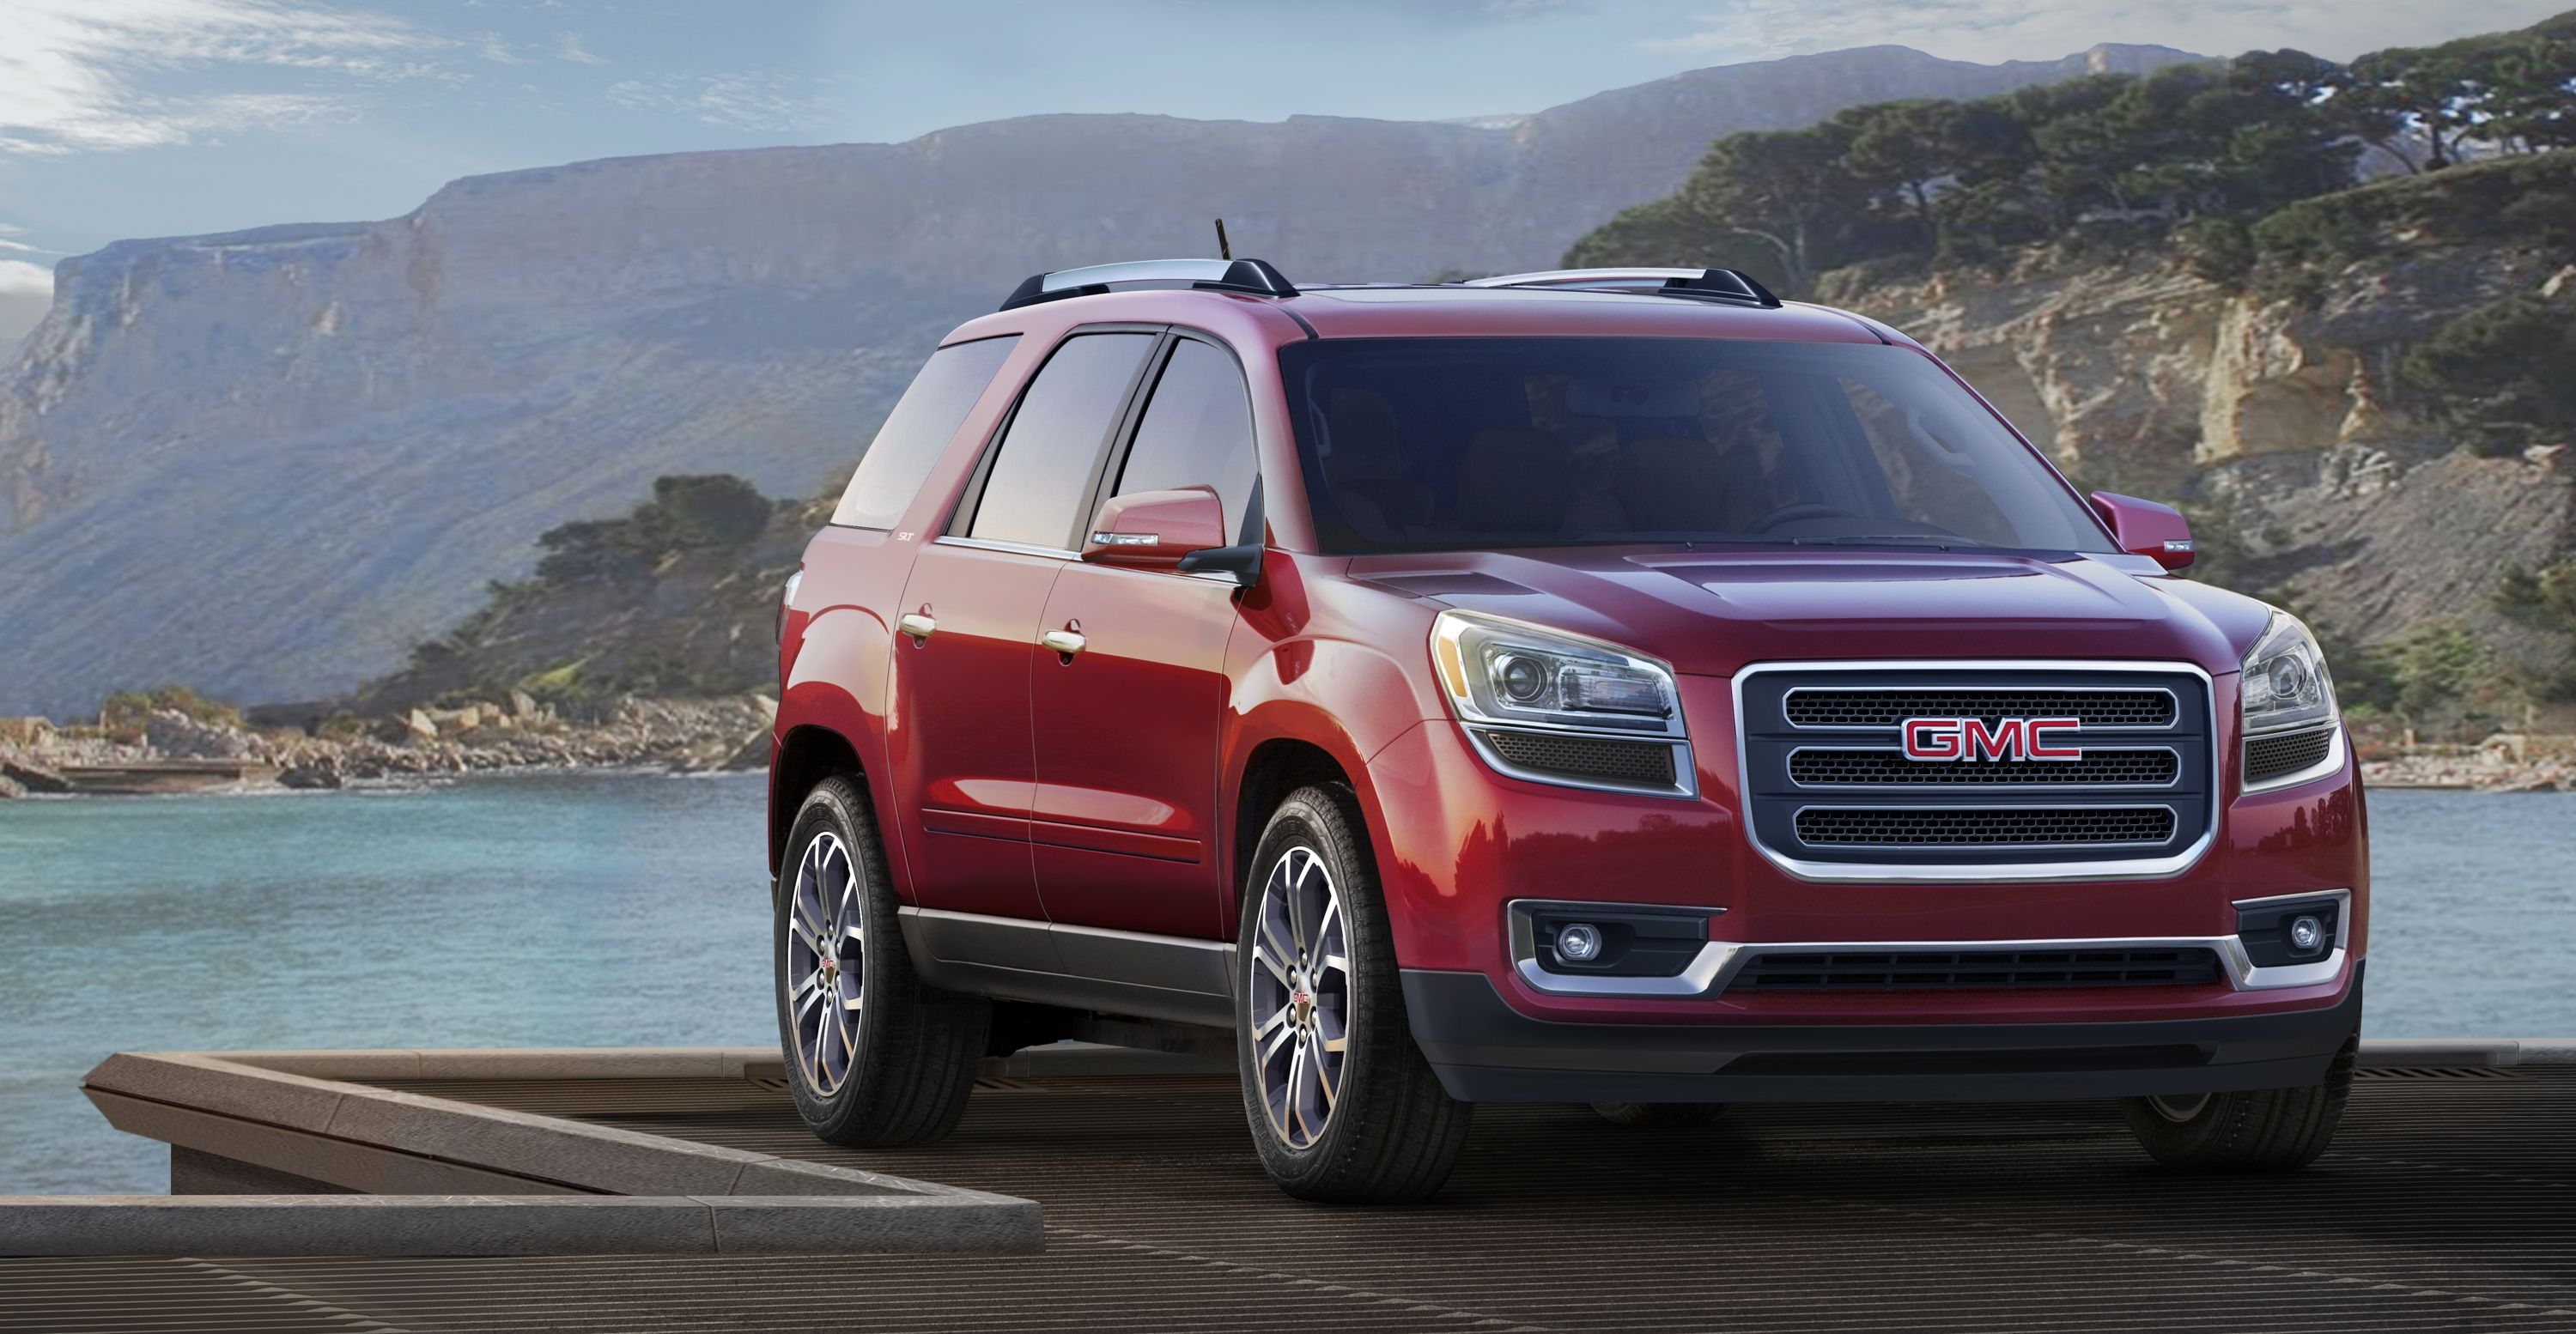 About The 2014 Gmc Acadia Gmc Suv Crossover Suv Best New Cars